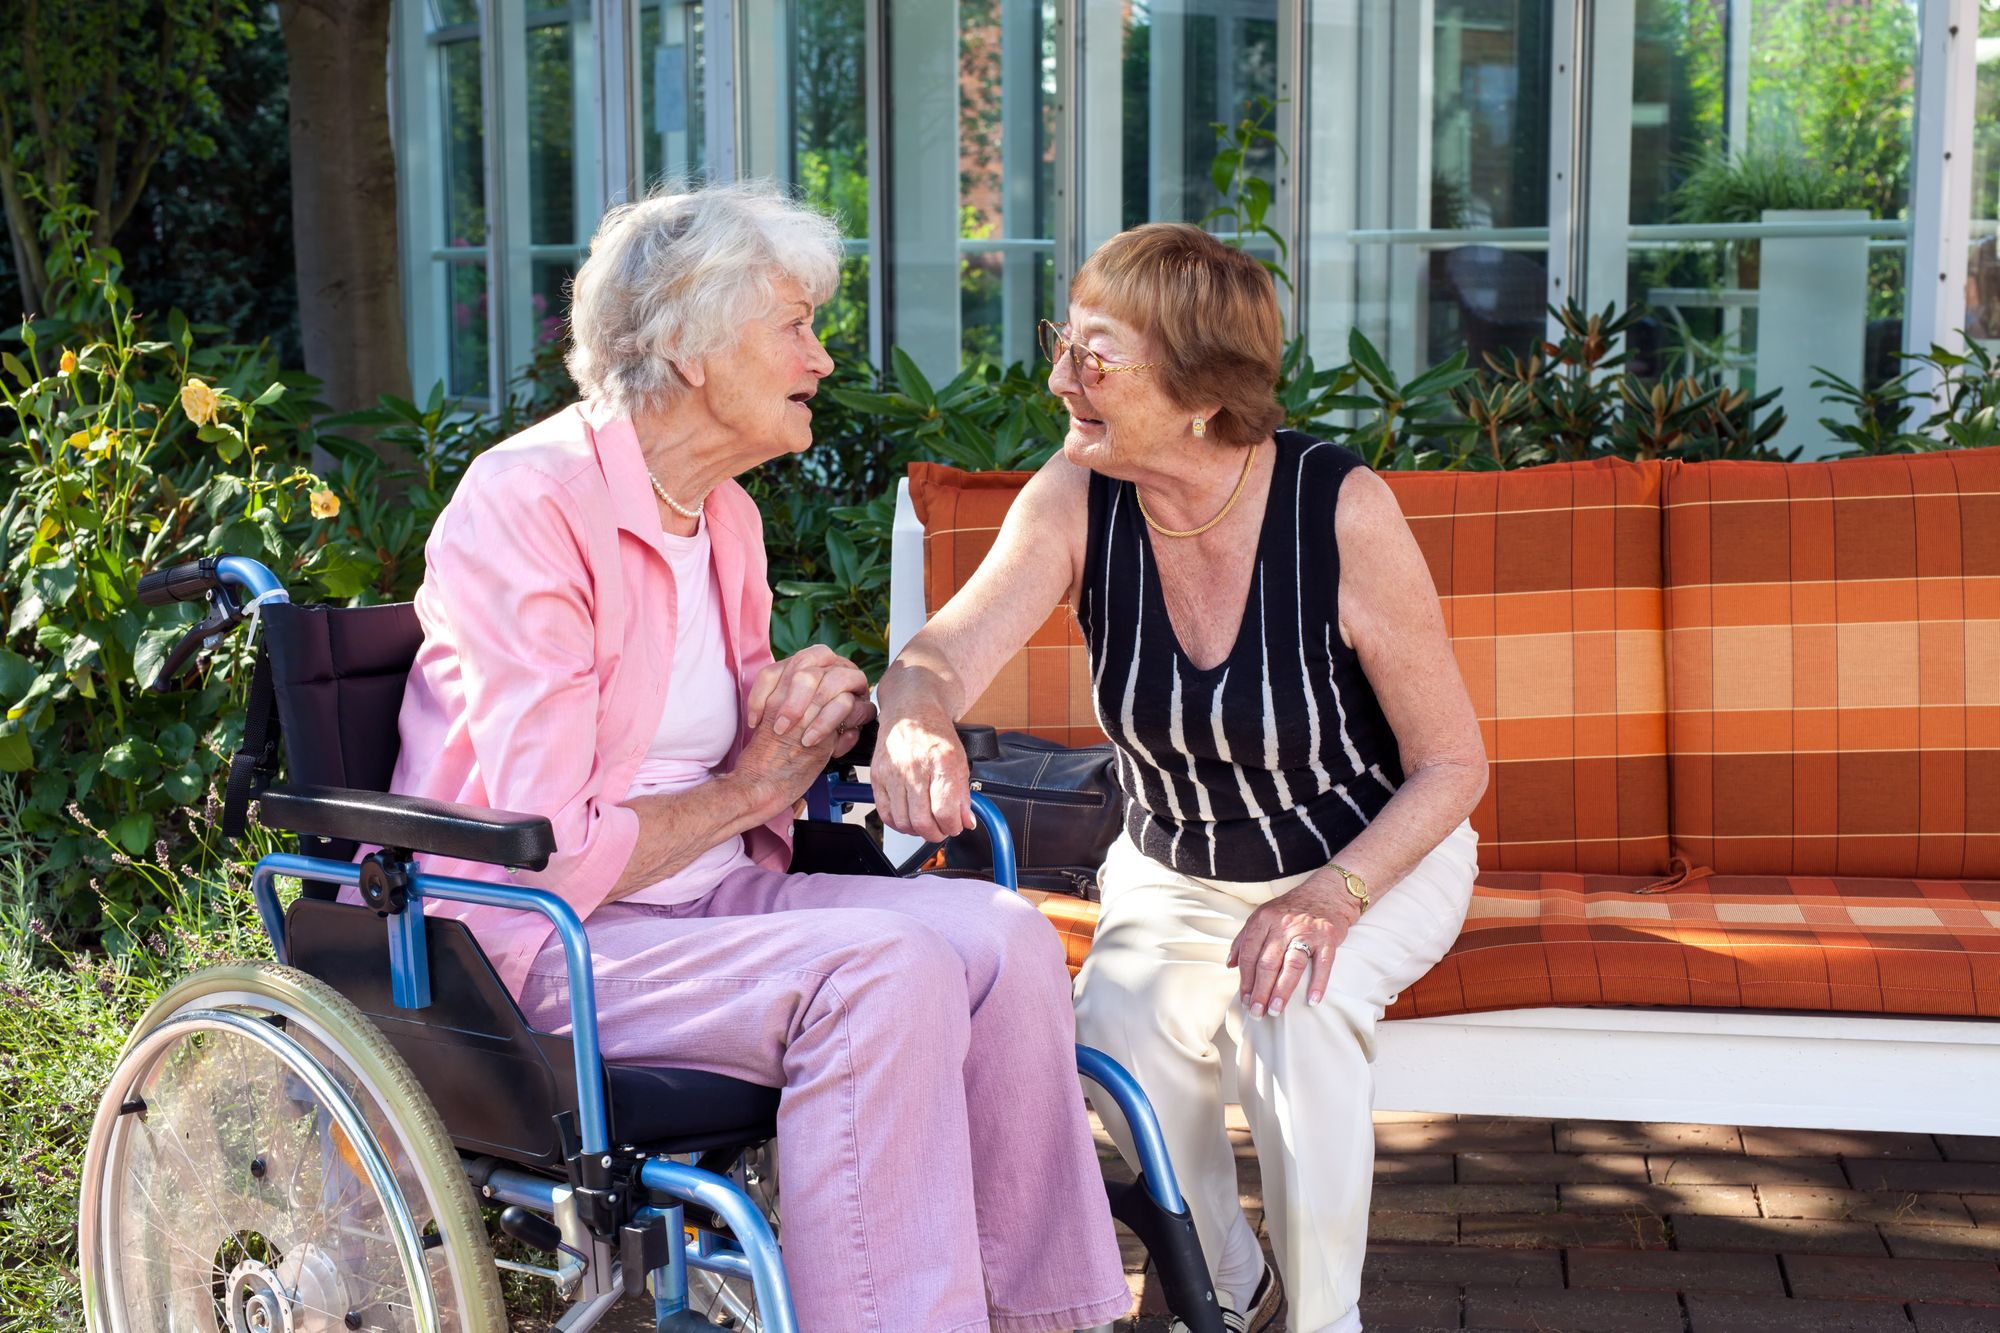 have a conversation with the caregiver or therapist